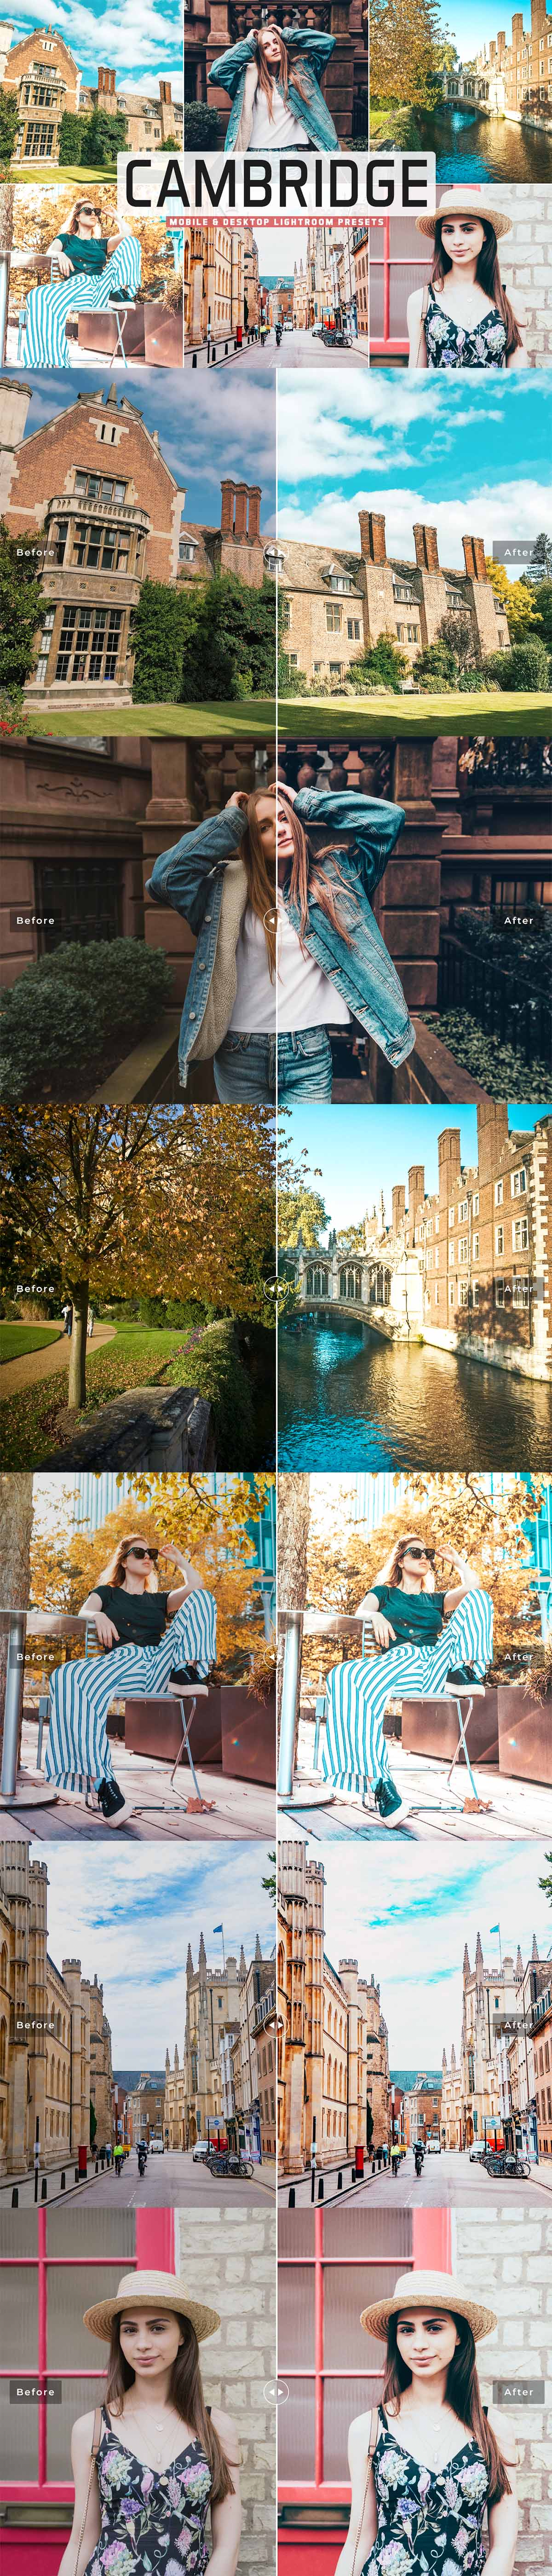 Free Cambridge Lightroom Presets